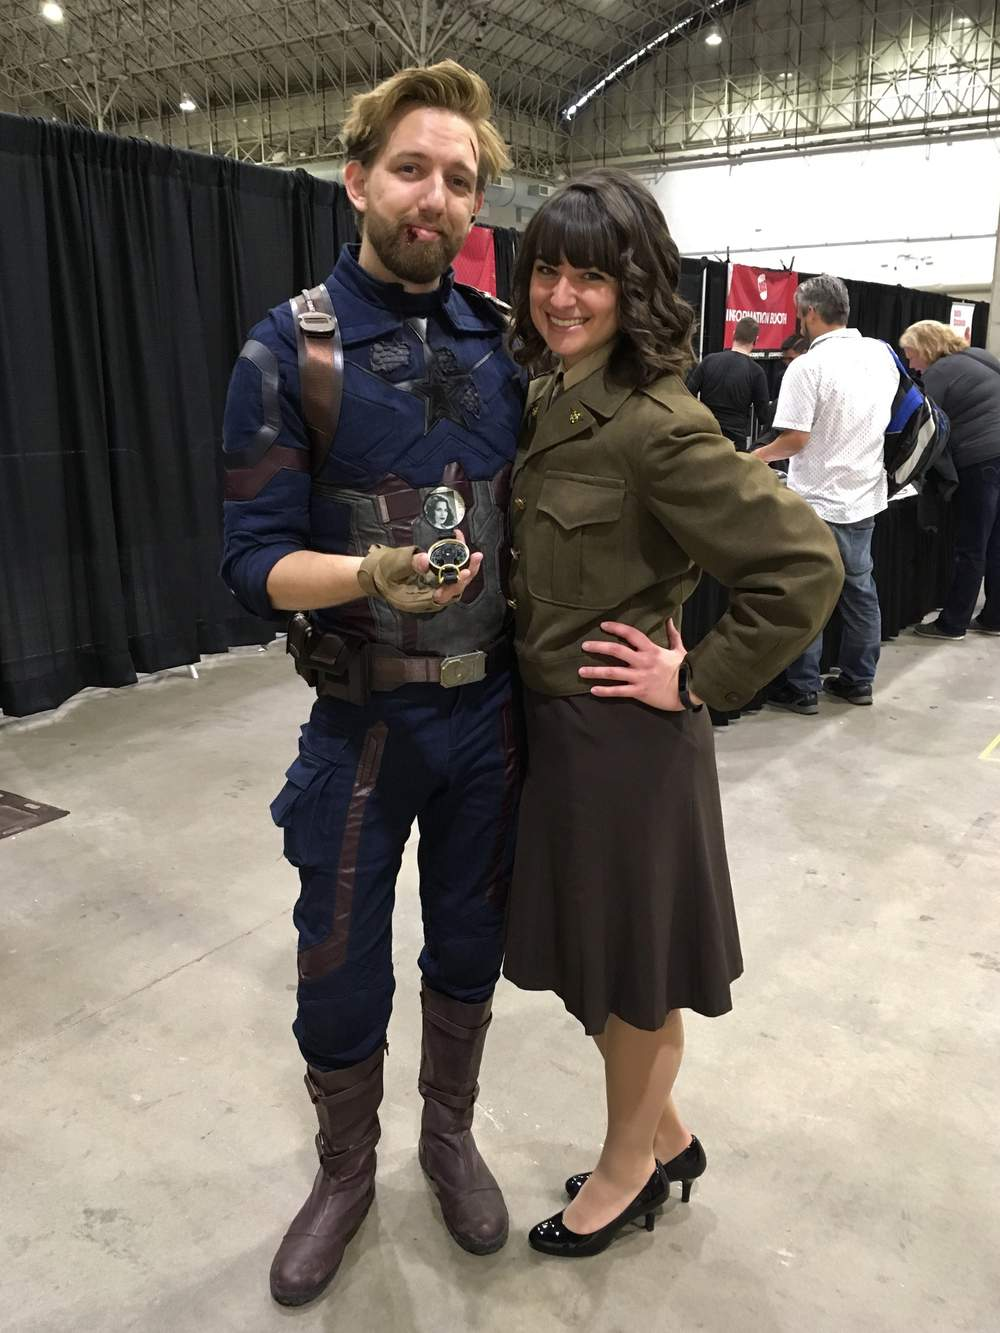 Captain America and Agent Carter cosplay